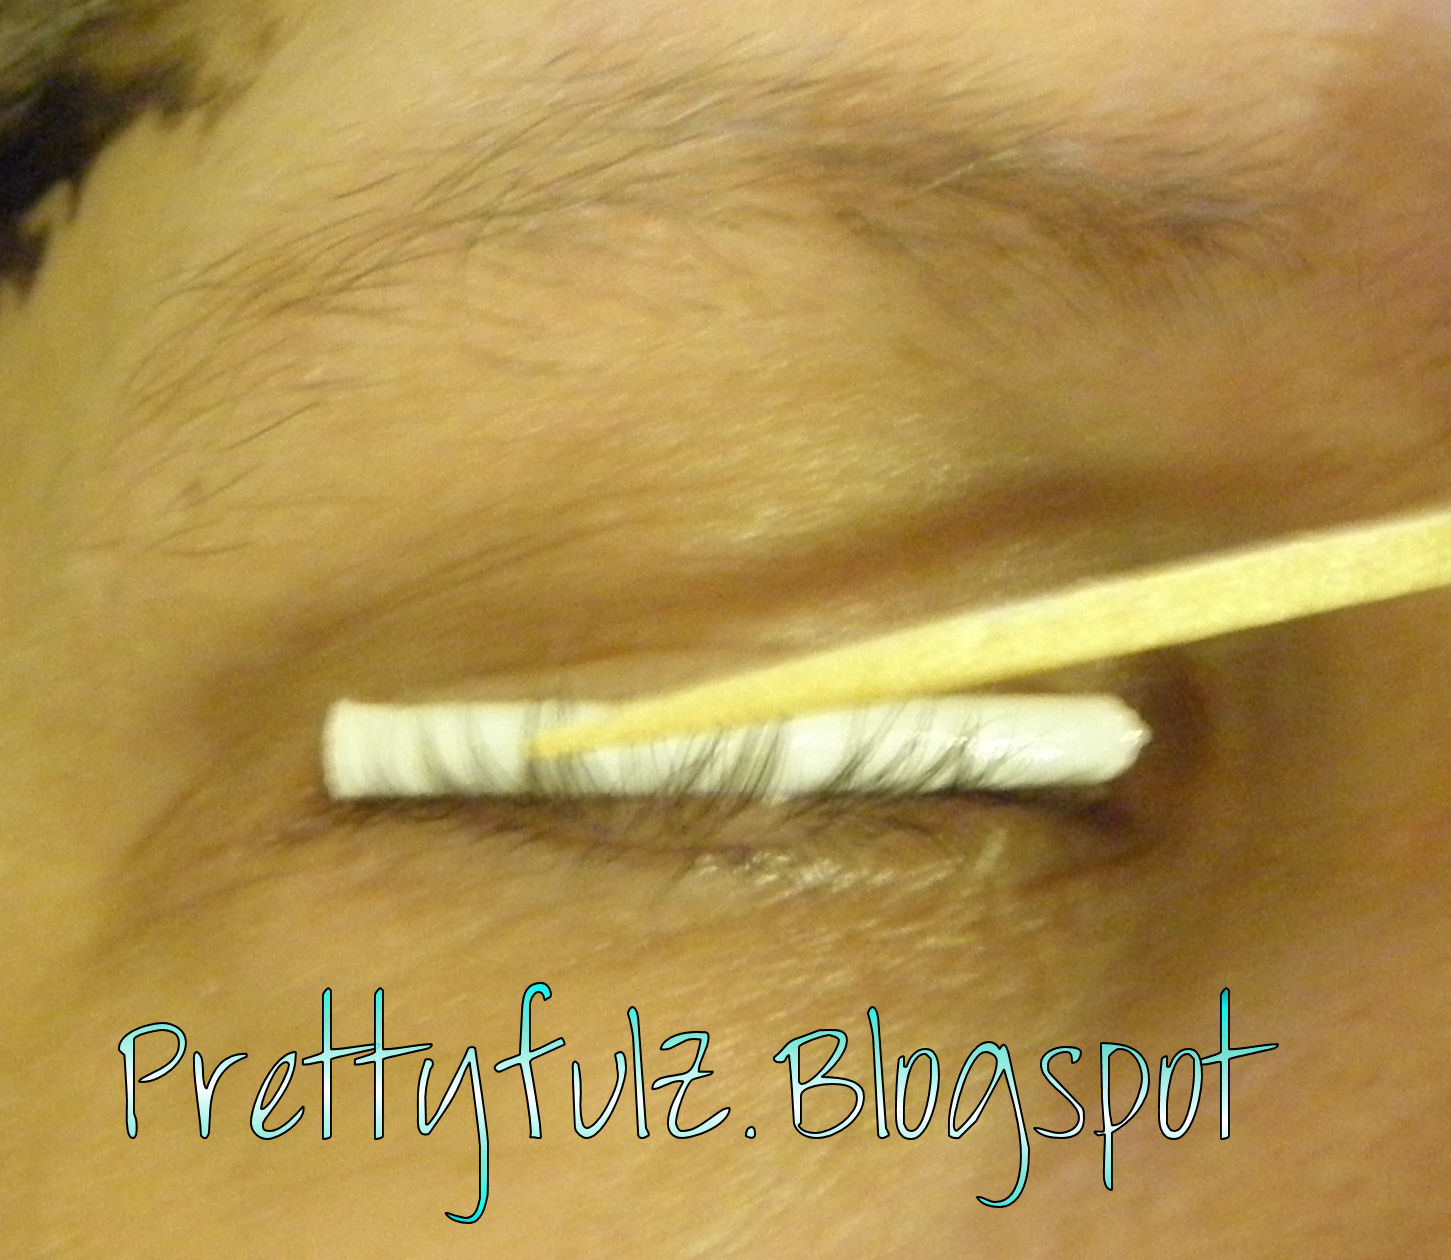 Prettyfulz how to perm your eyelashes at home diy using a toothpick sweep the eyelashes up onto the rod and gently press them against the rod to get them to stick try to keep the eyelashes in order solutioingenieria Gallery